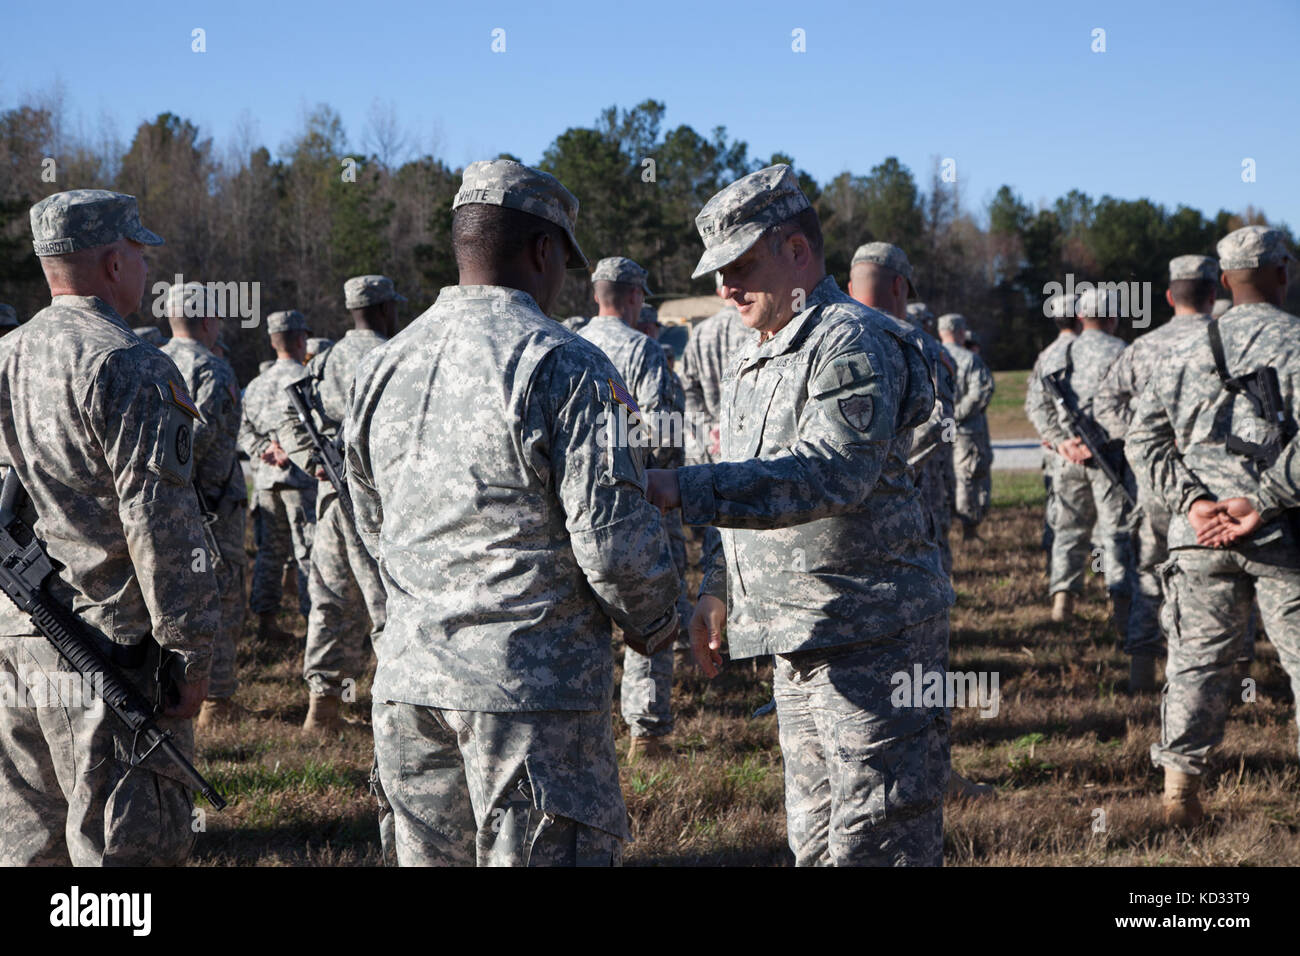 Camp Butner Stock Photos Amp Camp Butner Stock Images Alamy